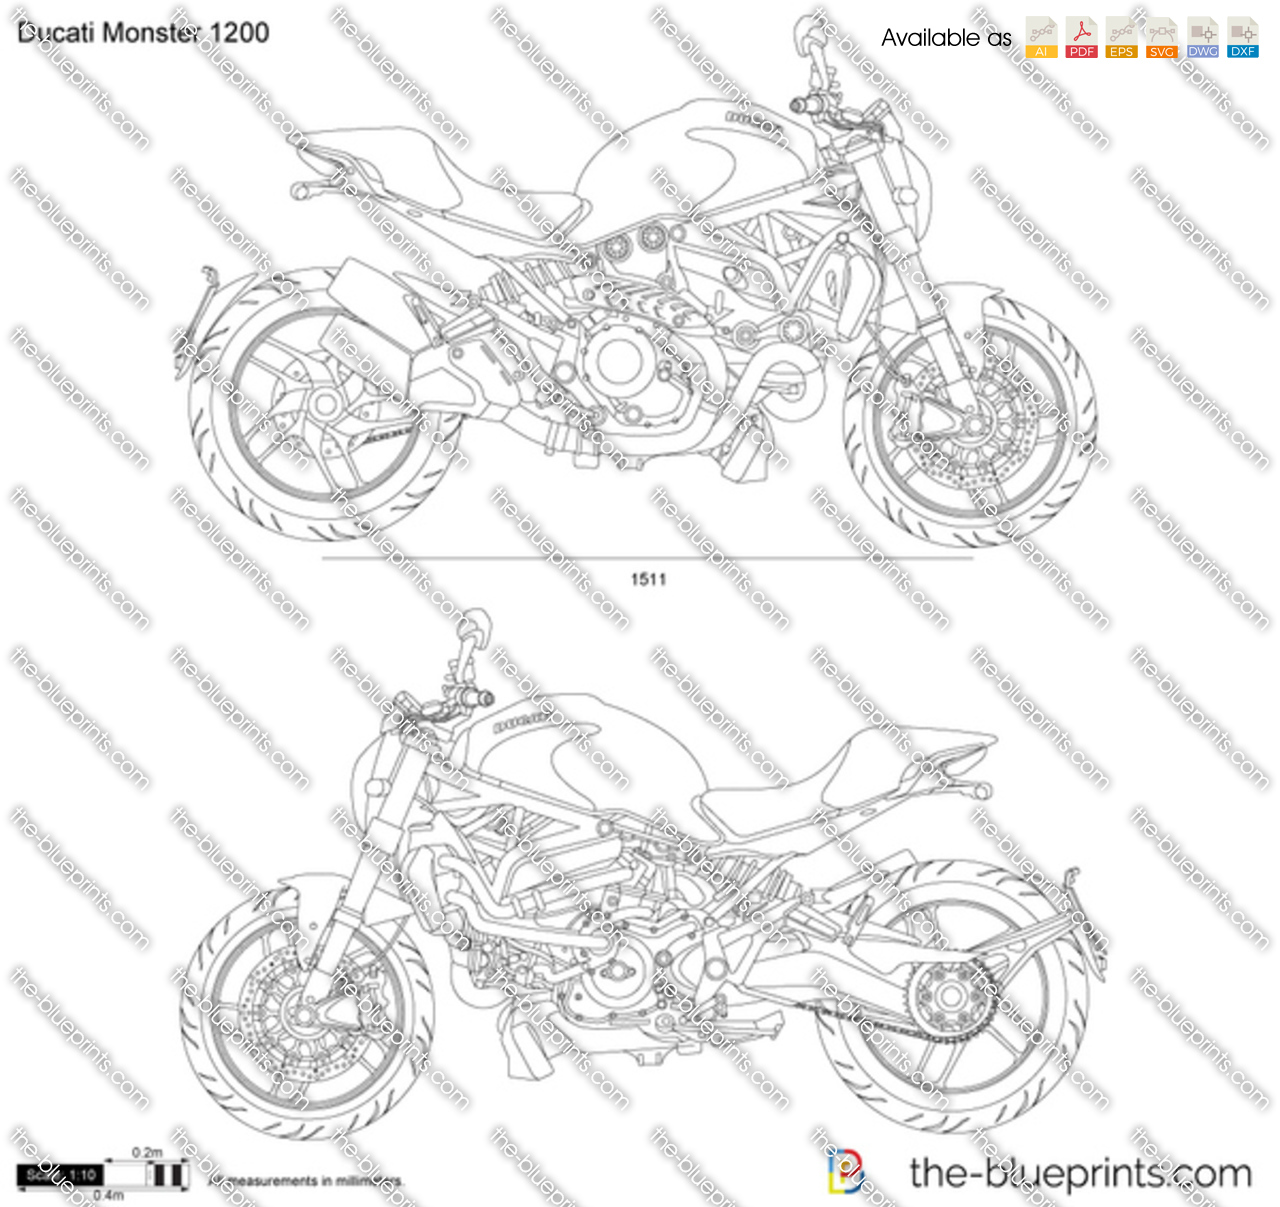 Ducati Monster 1200 Price >> Ducati Monster 1200 vector drawing